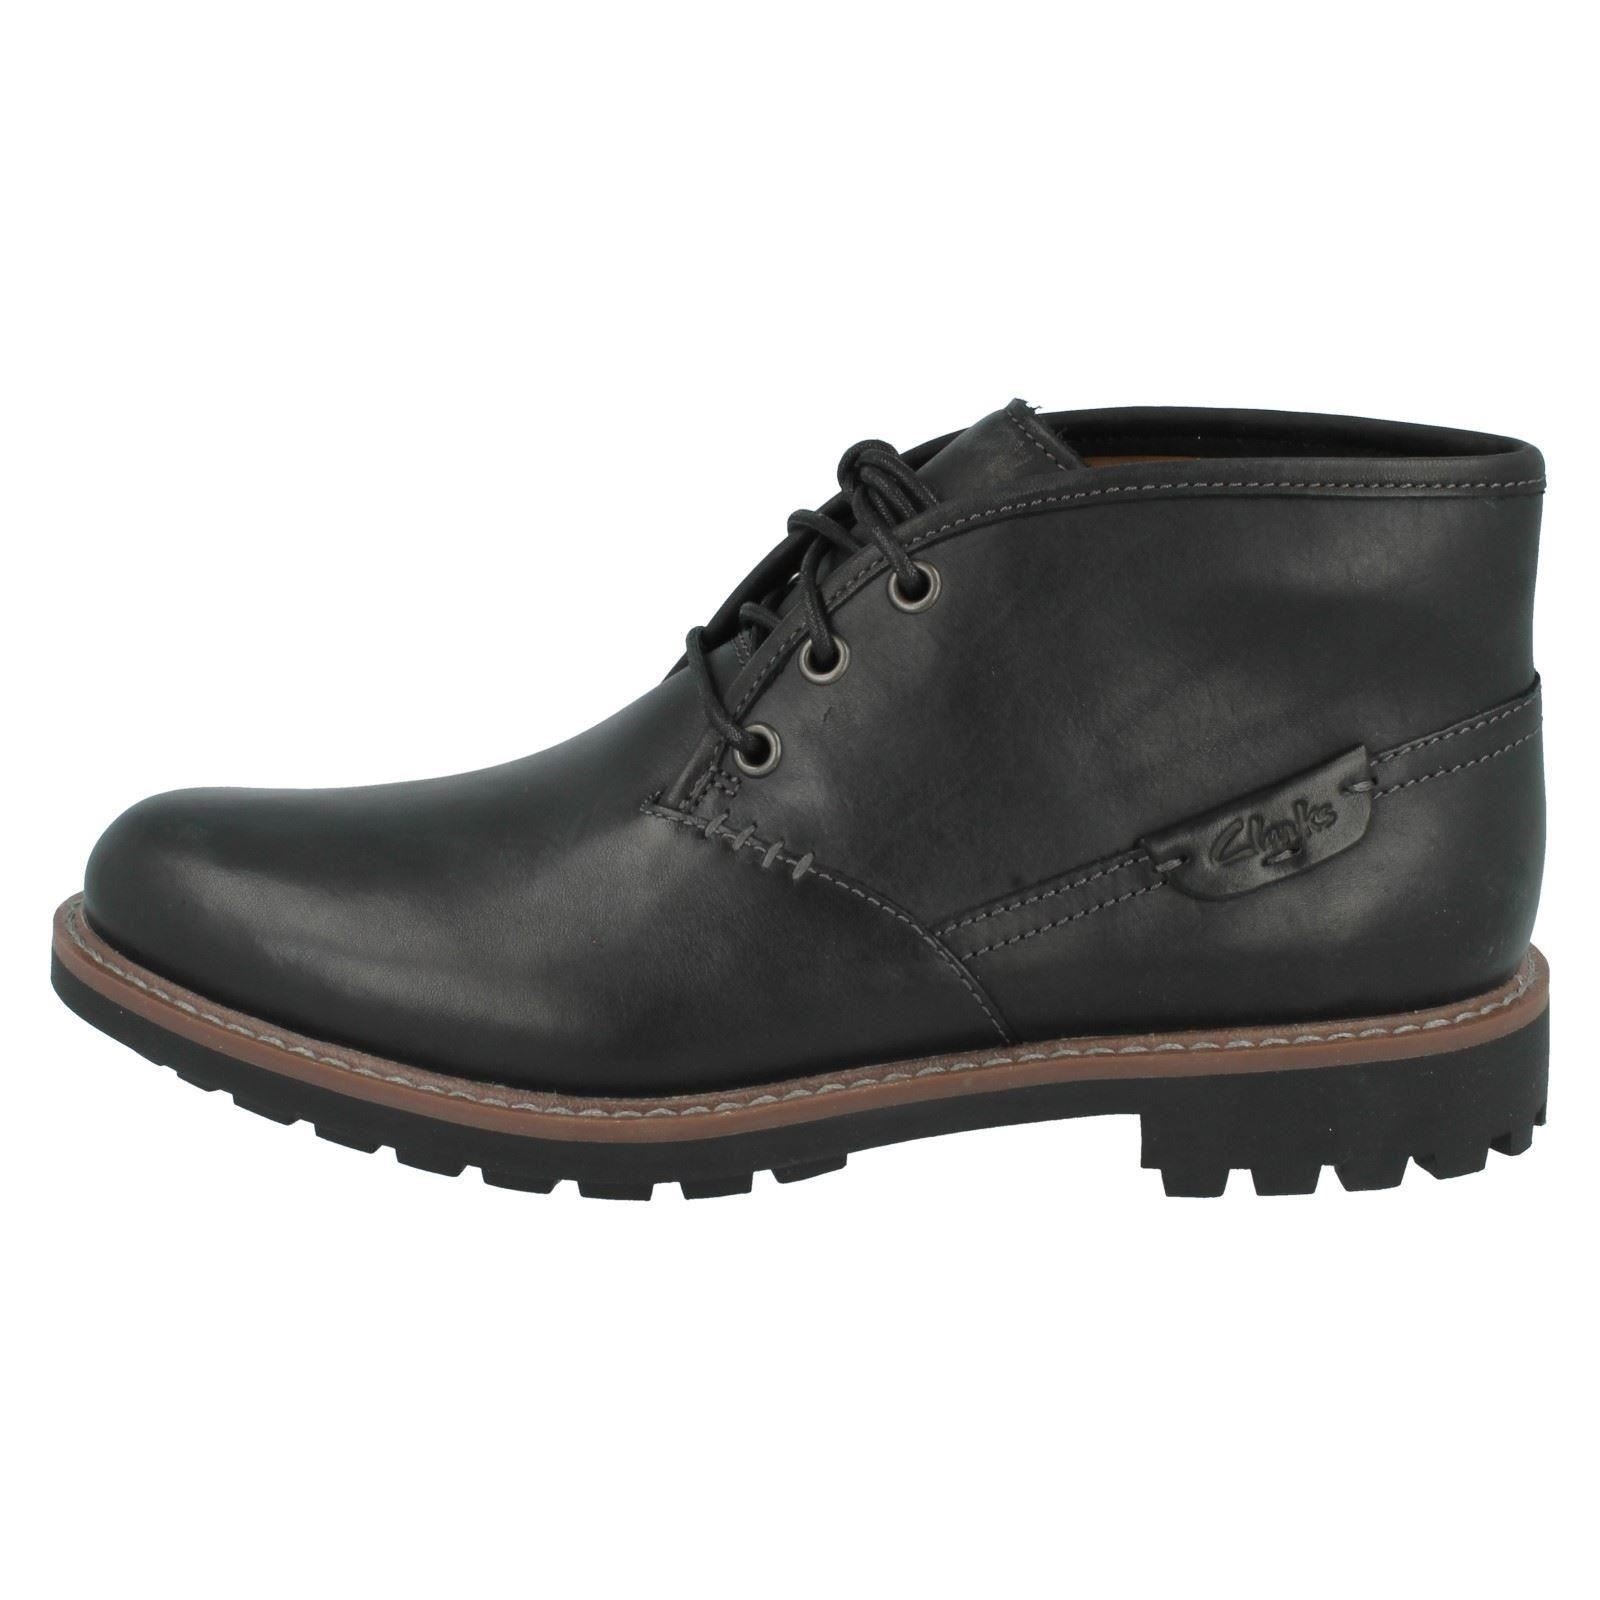 0ef67e92c2cf4 Clarks Mens Casual Montacute Duke Leather BOOTS in Black 9 G ...